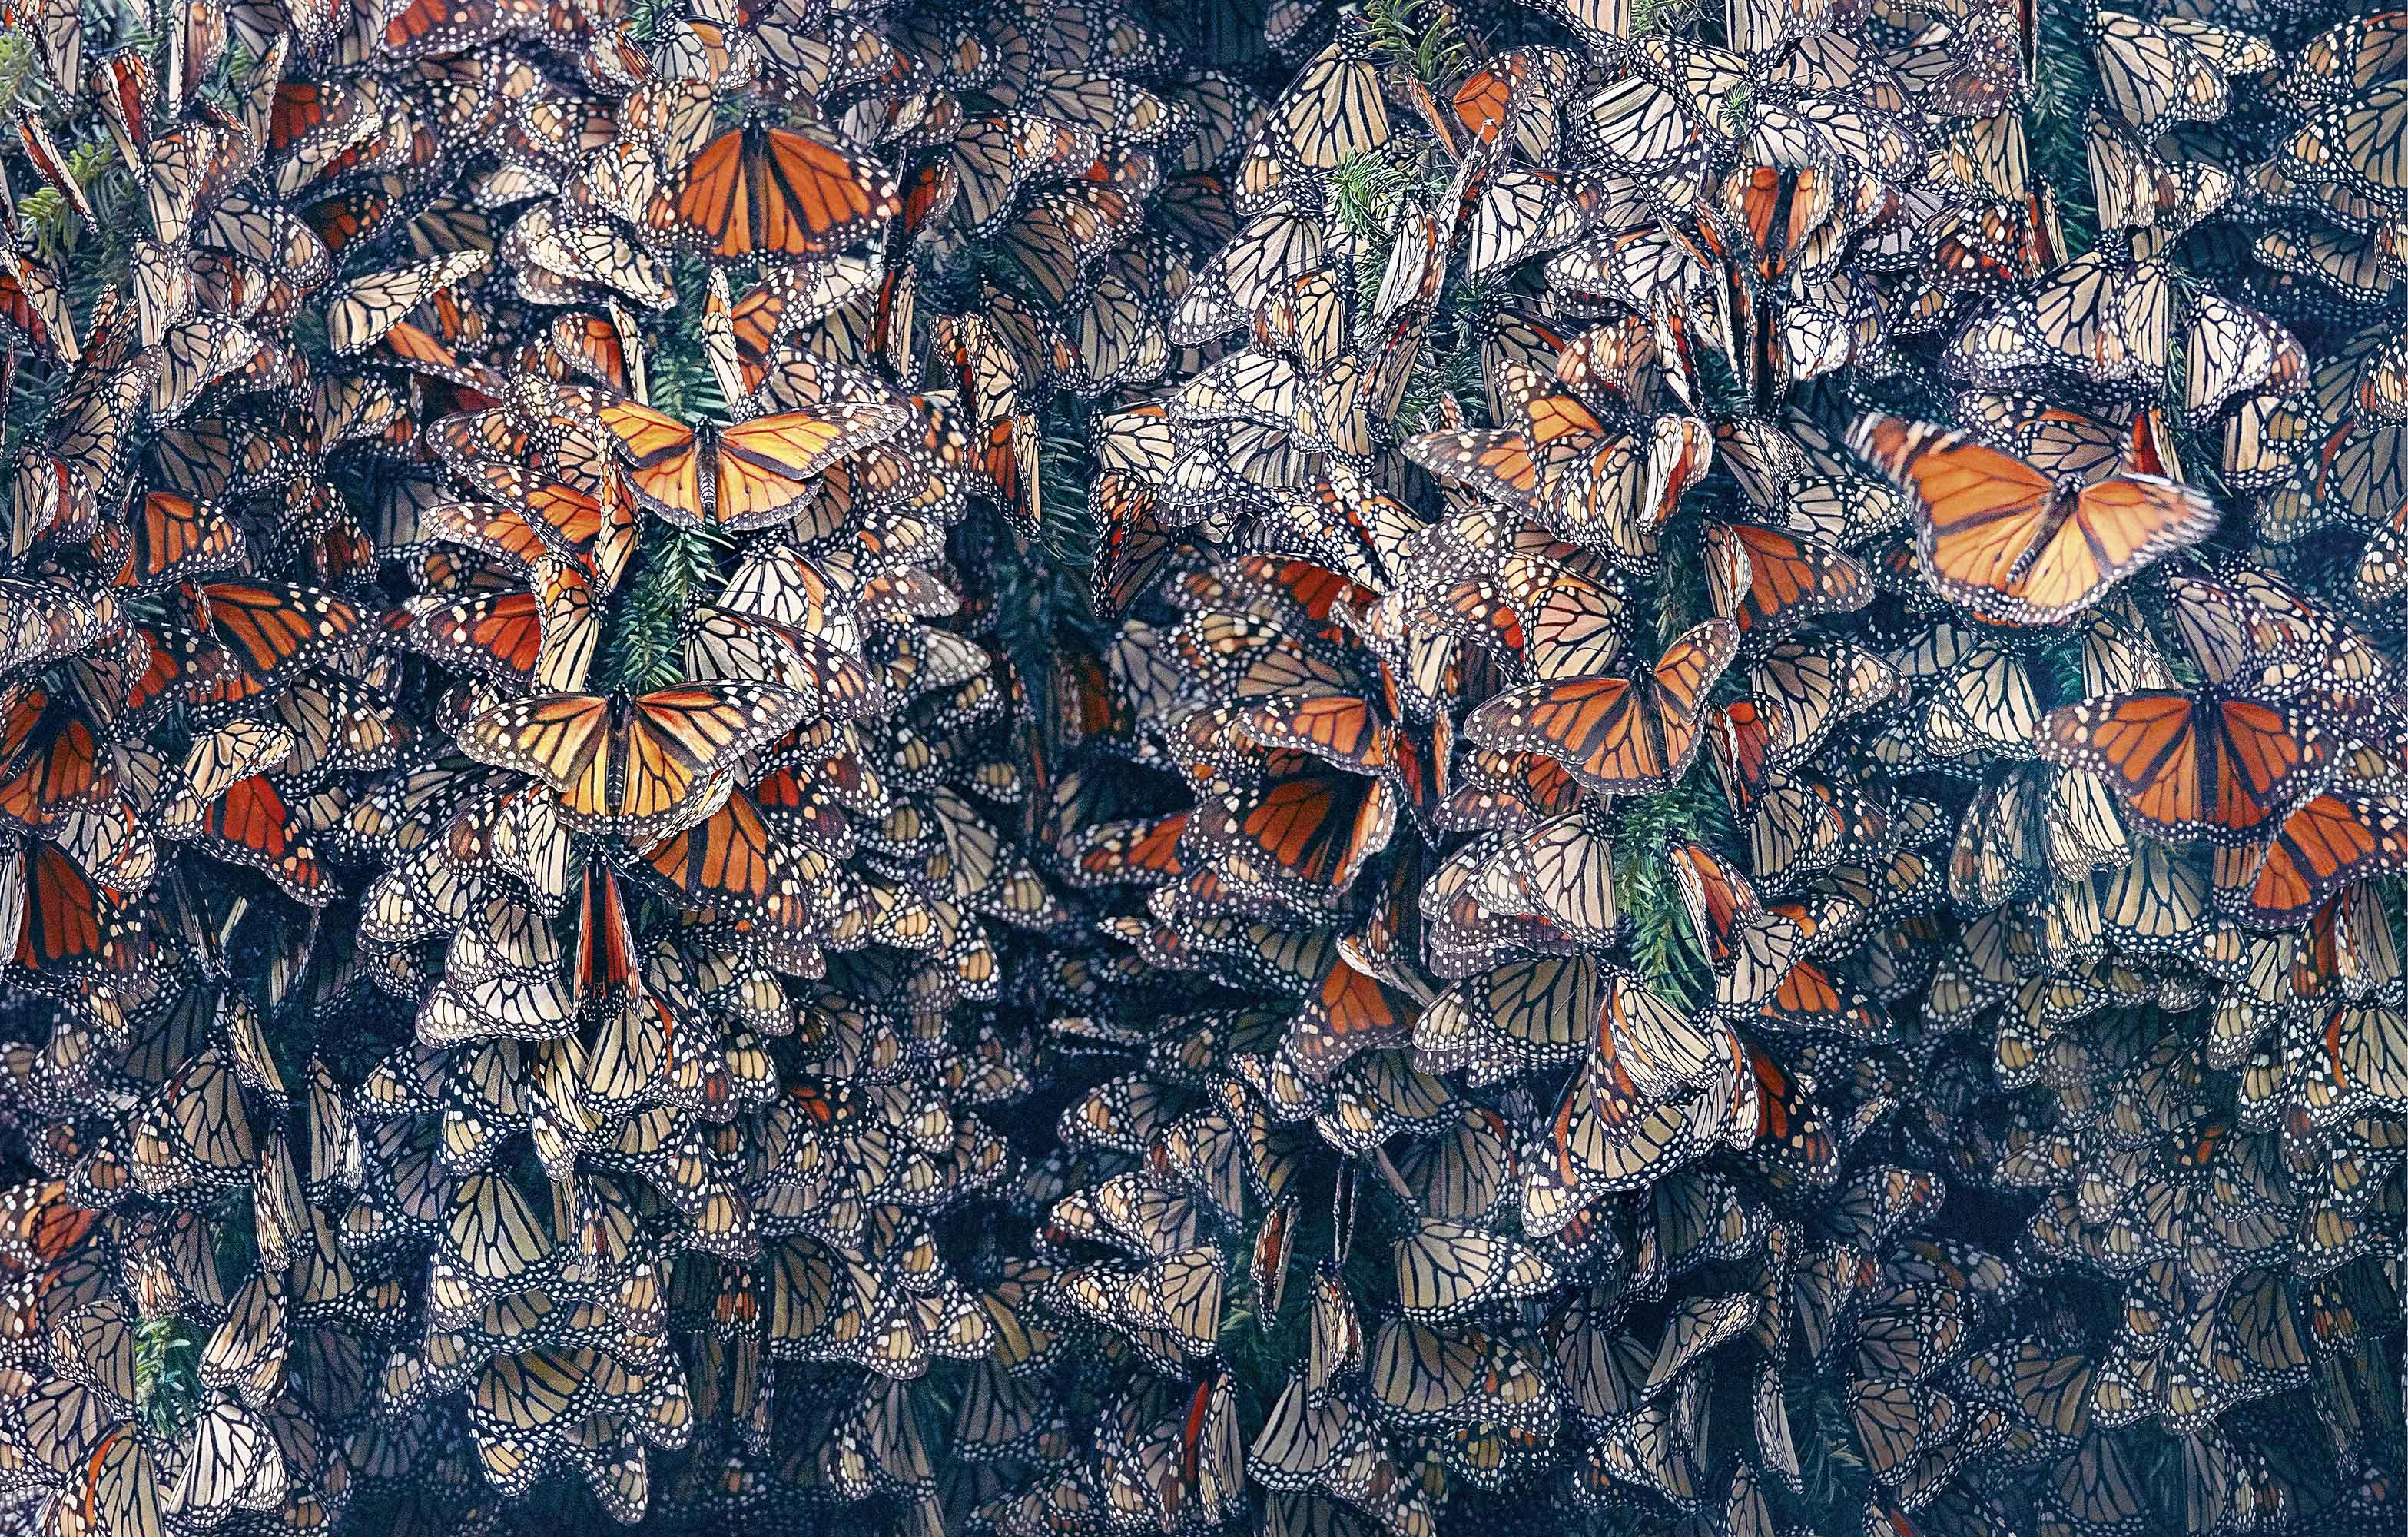 Tim_Flach_Monarch Butterflies.jpg